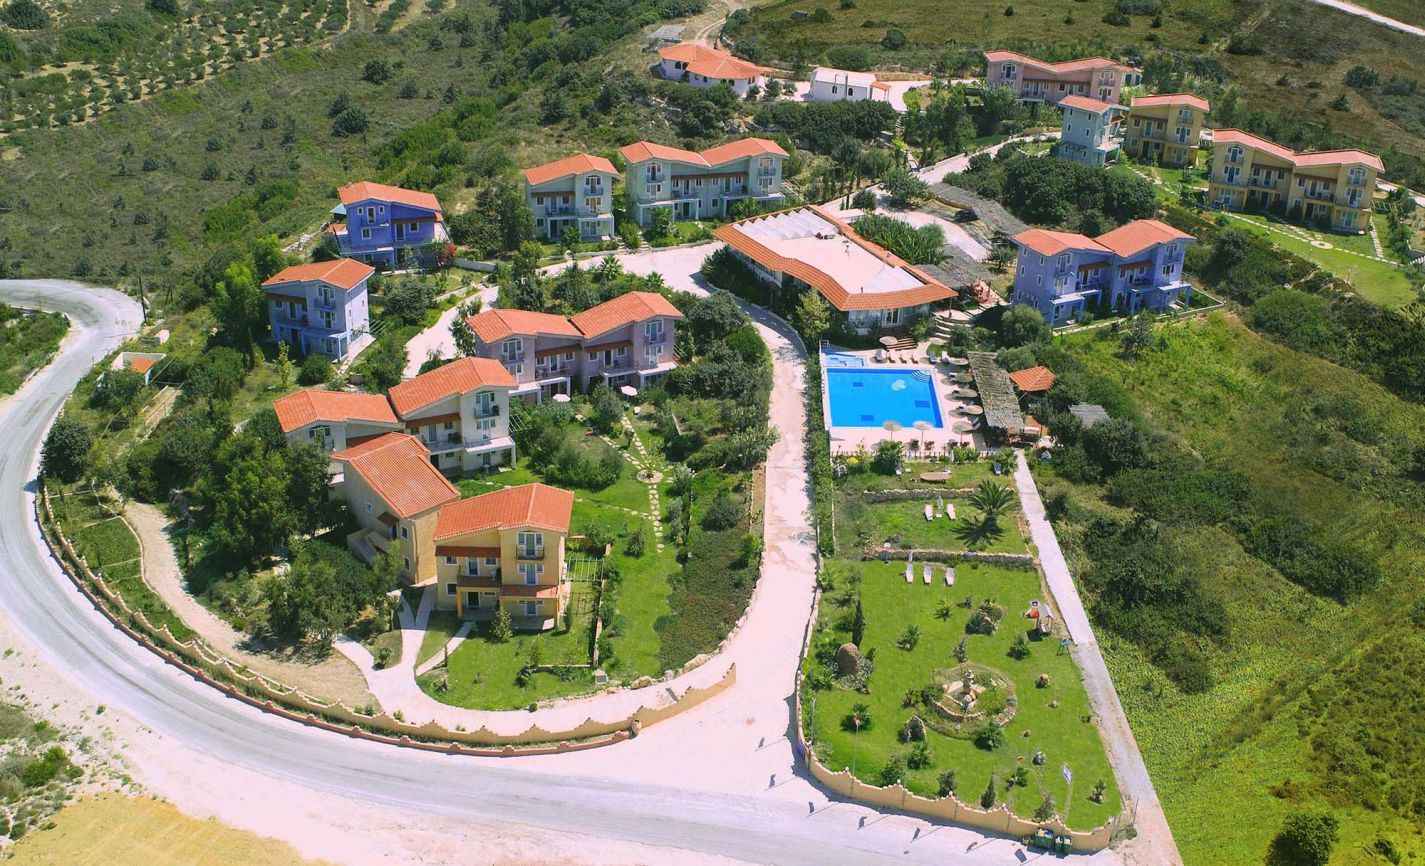 4* The Small Village - Κως ✦ -15% ✦ 2 Ημέρες (1 Διανυκτέρευση)